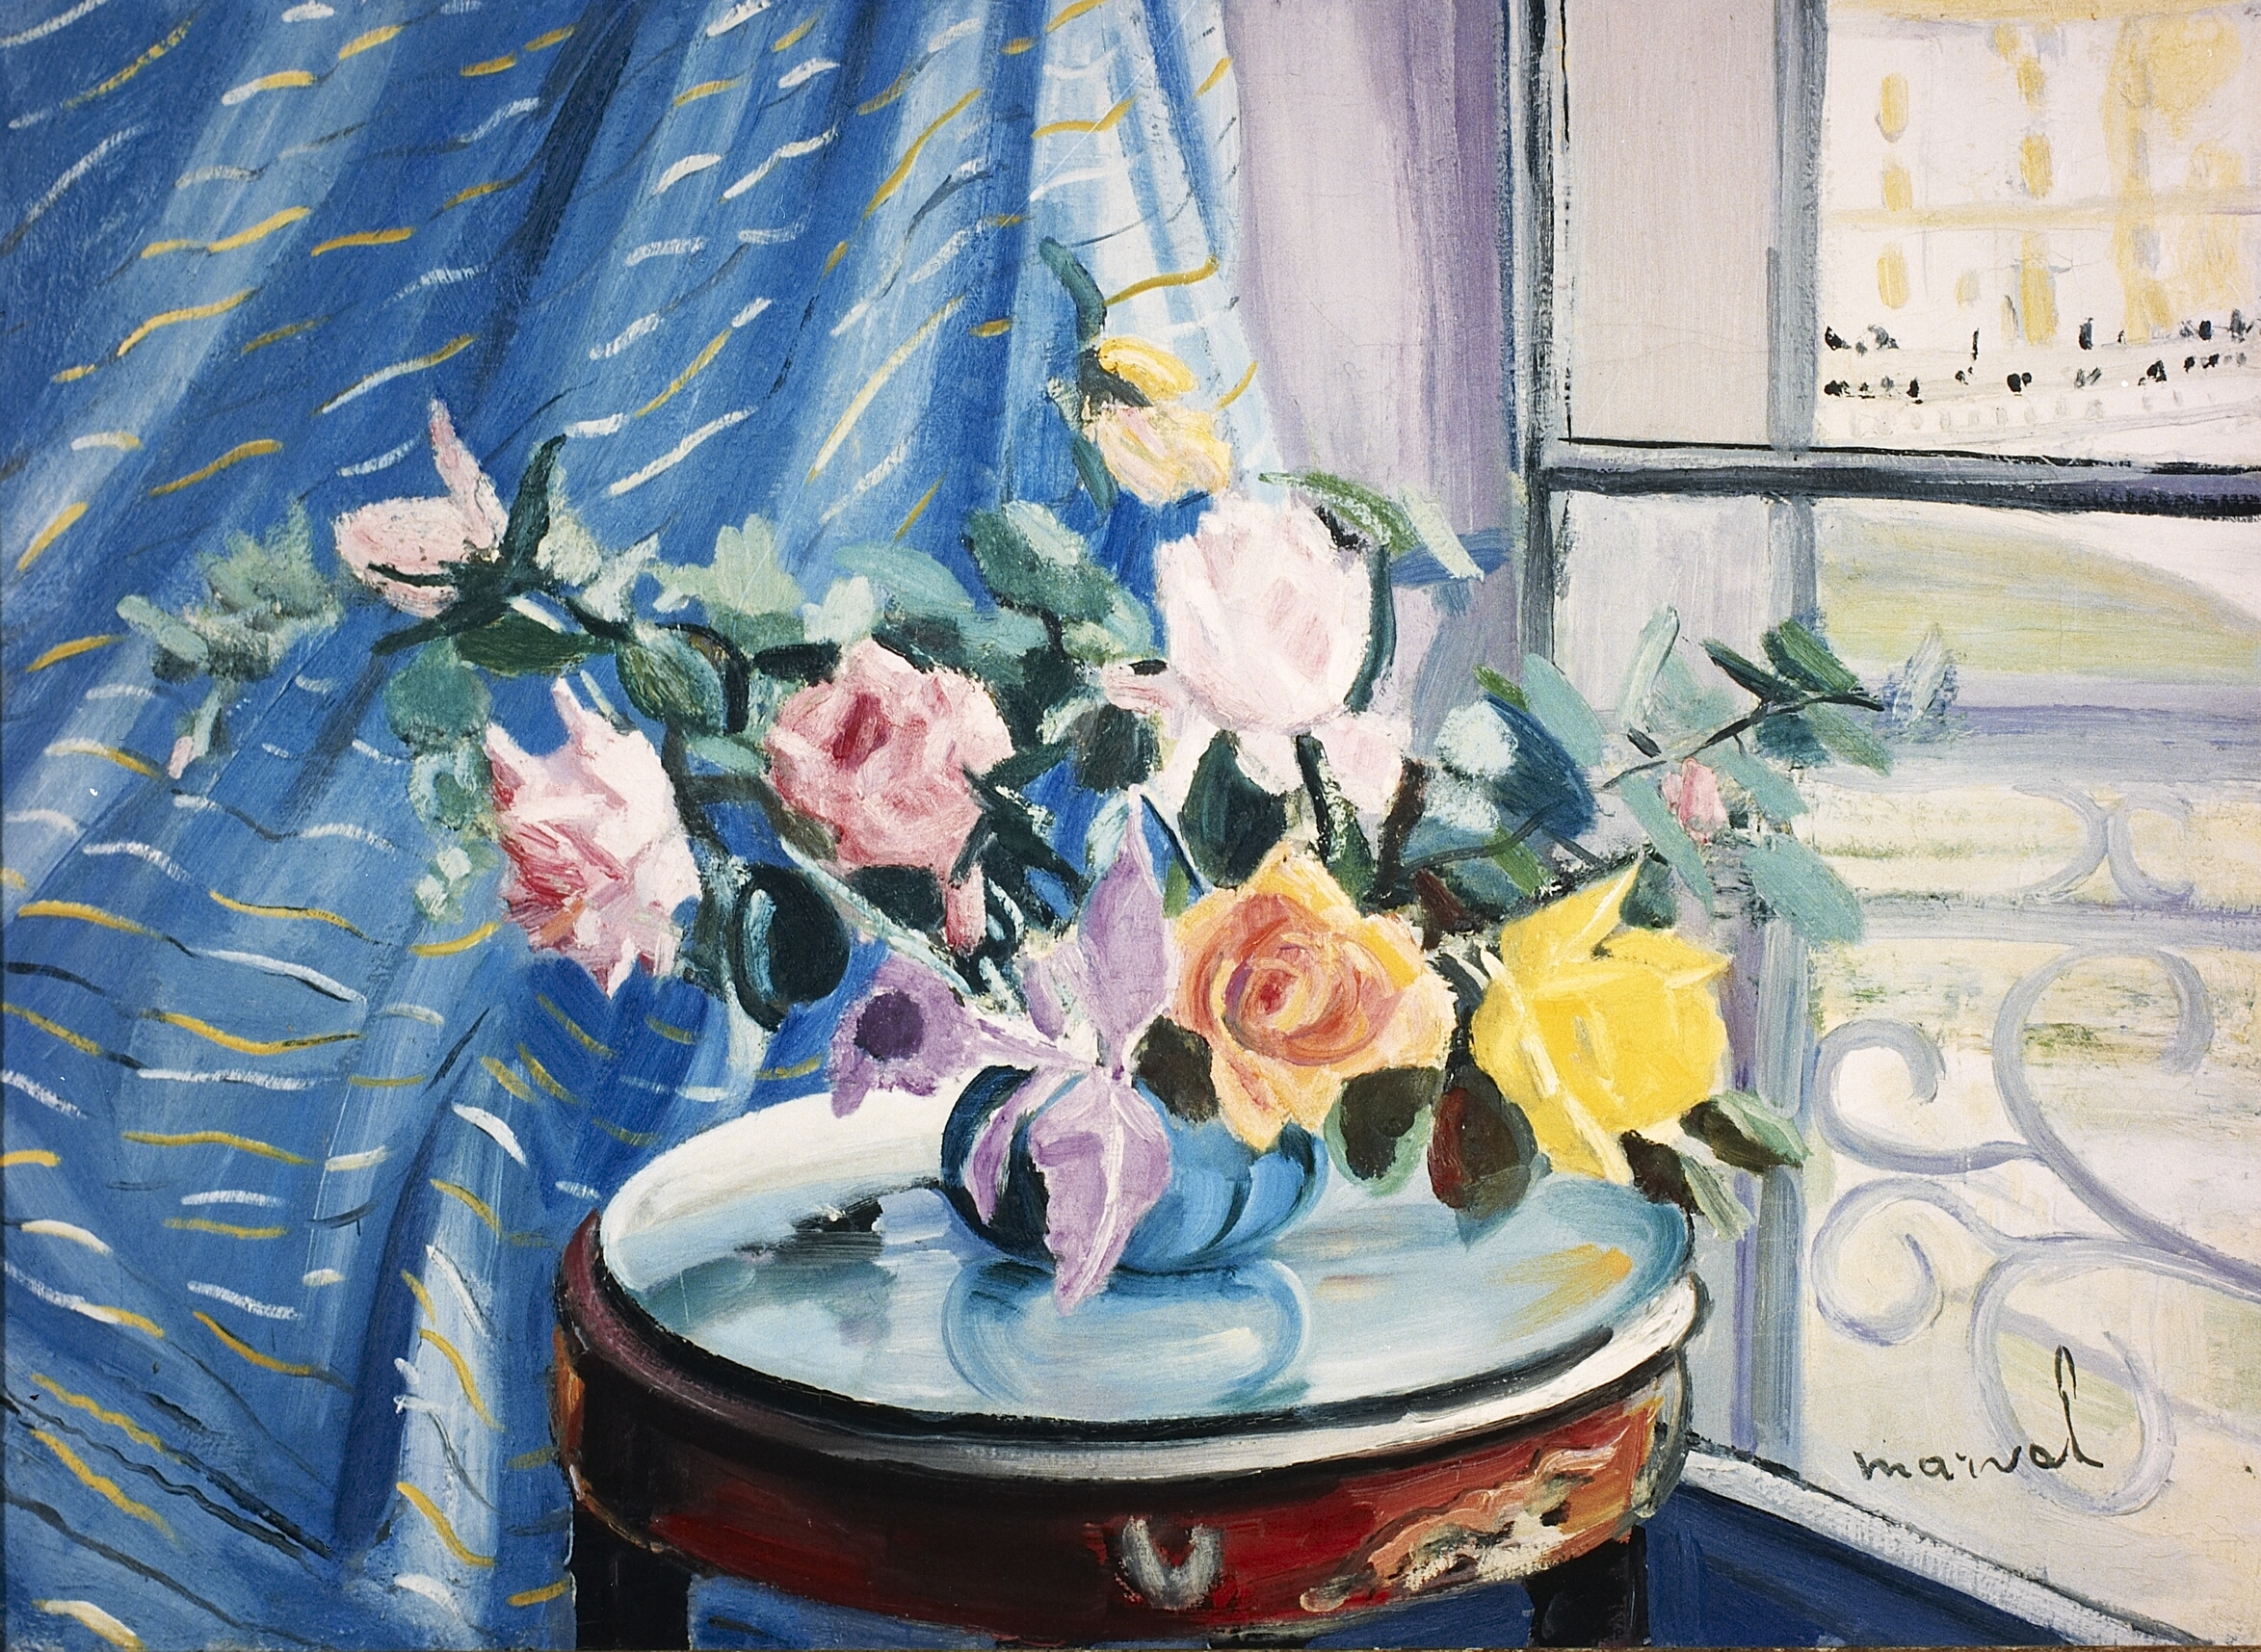 Roses à ma Fenêtre, Jacqueline Marval. Oil on canvas.